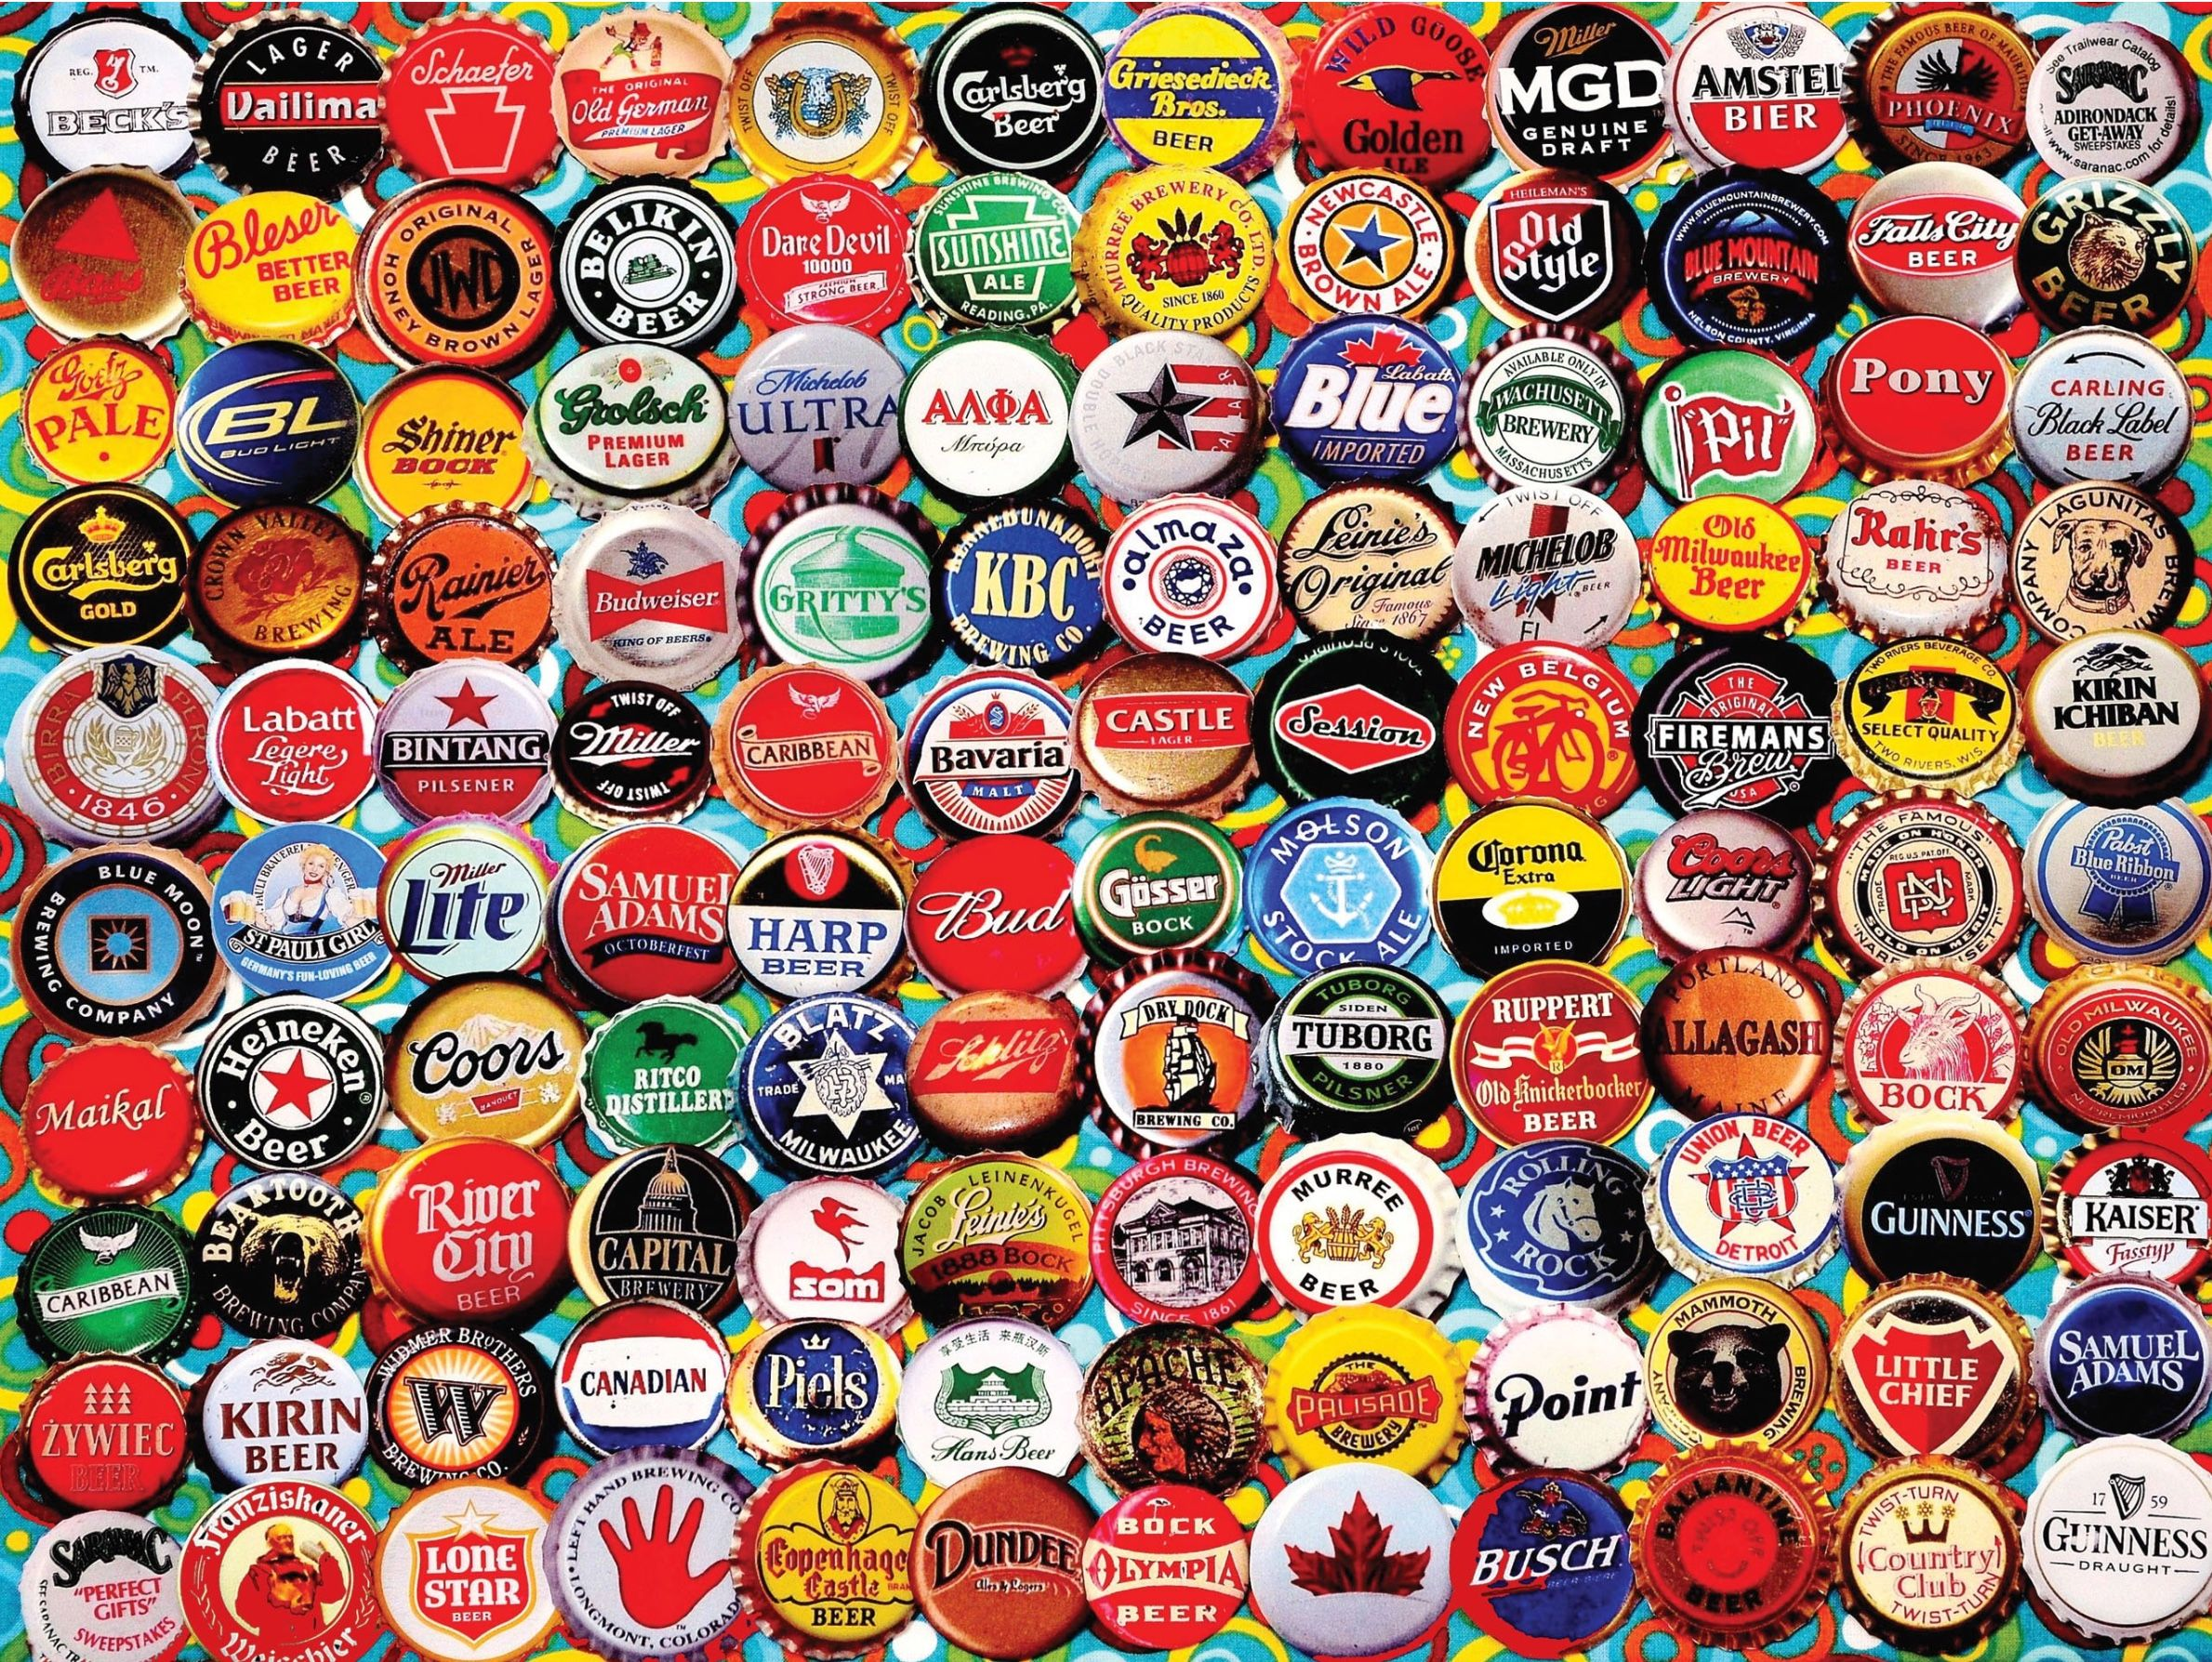 Pin By Sally Williams On Puzzles Beer Caps Beer Bottle Beer Bottle Caps